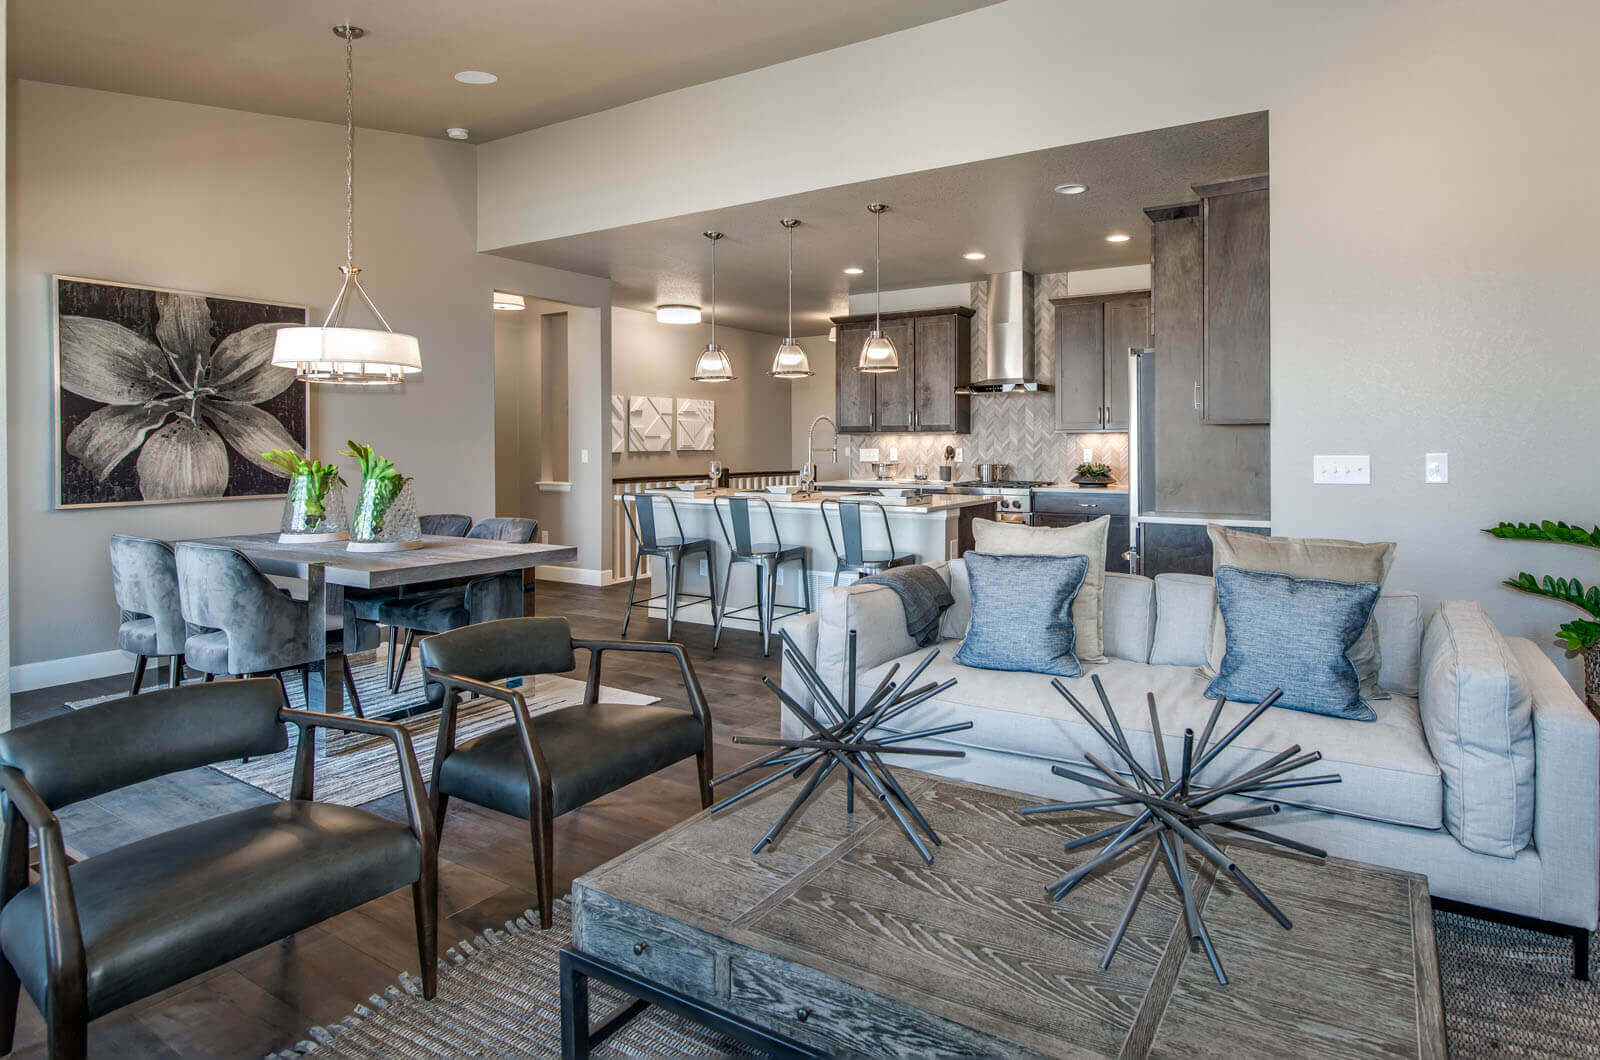 New Denver Single Family Home Quick Possession Willow in Lincoln Creek, located at 11805 Barrentine Looop Built By Cardel Homes Denver